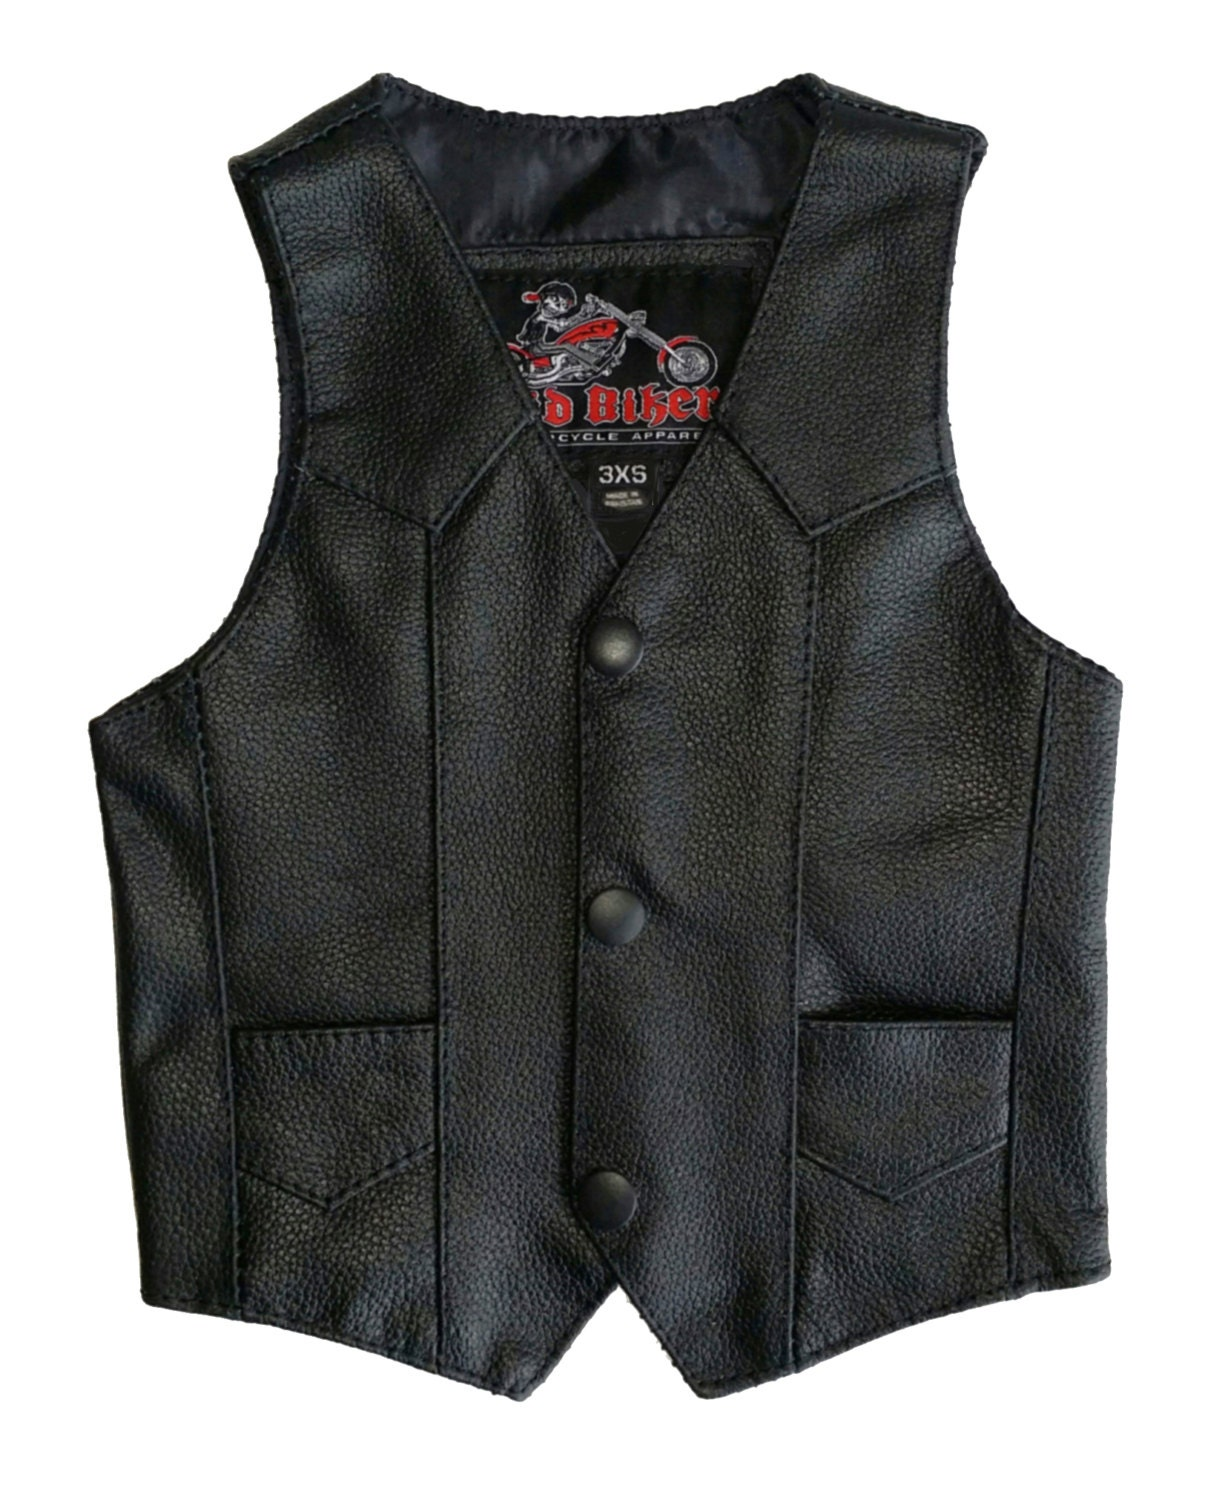 Clothing Leather Vest. invalid category id. Clothing Leather Vest. Showing 24 of 24 results that match your query. We focused on the bestselling products customers like you want most in categories like Baby, Clothing, Electronics and Health & Beauty. Marketplace items.